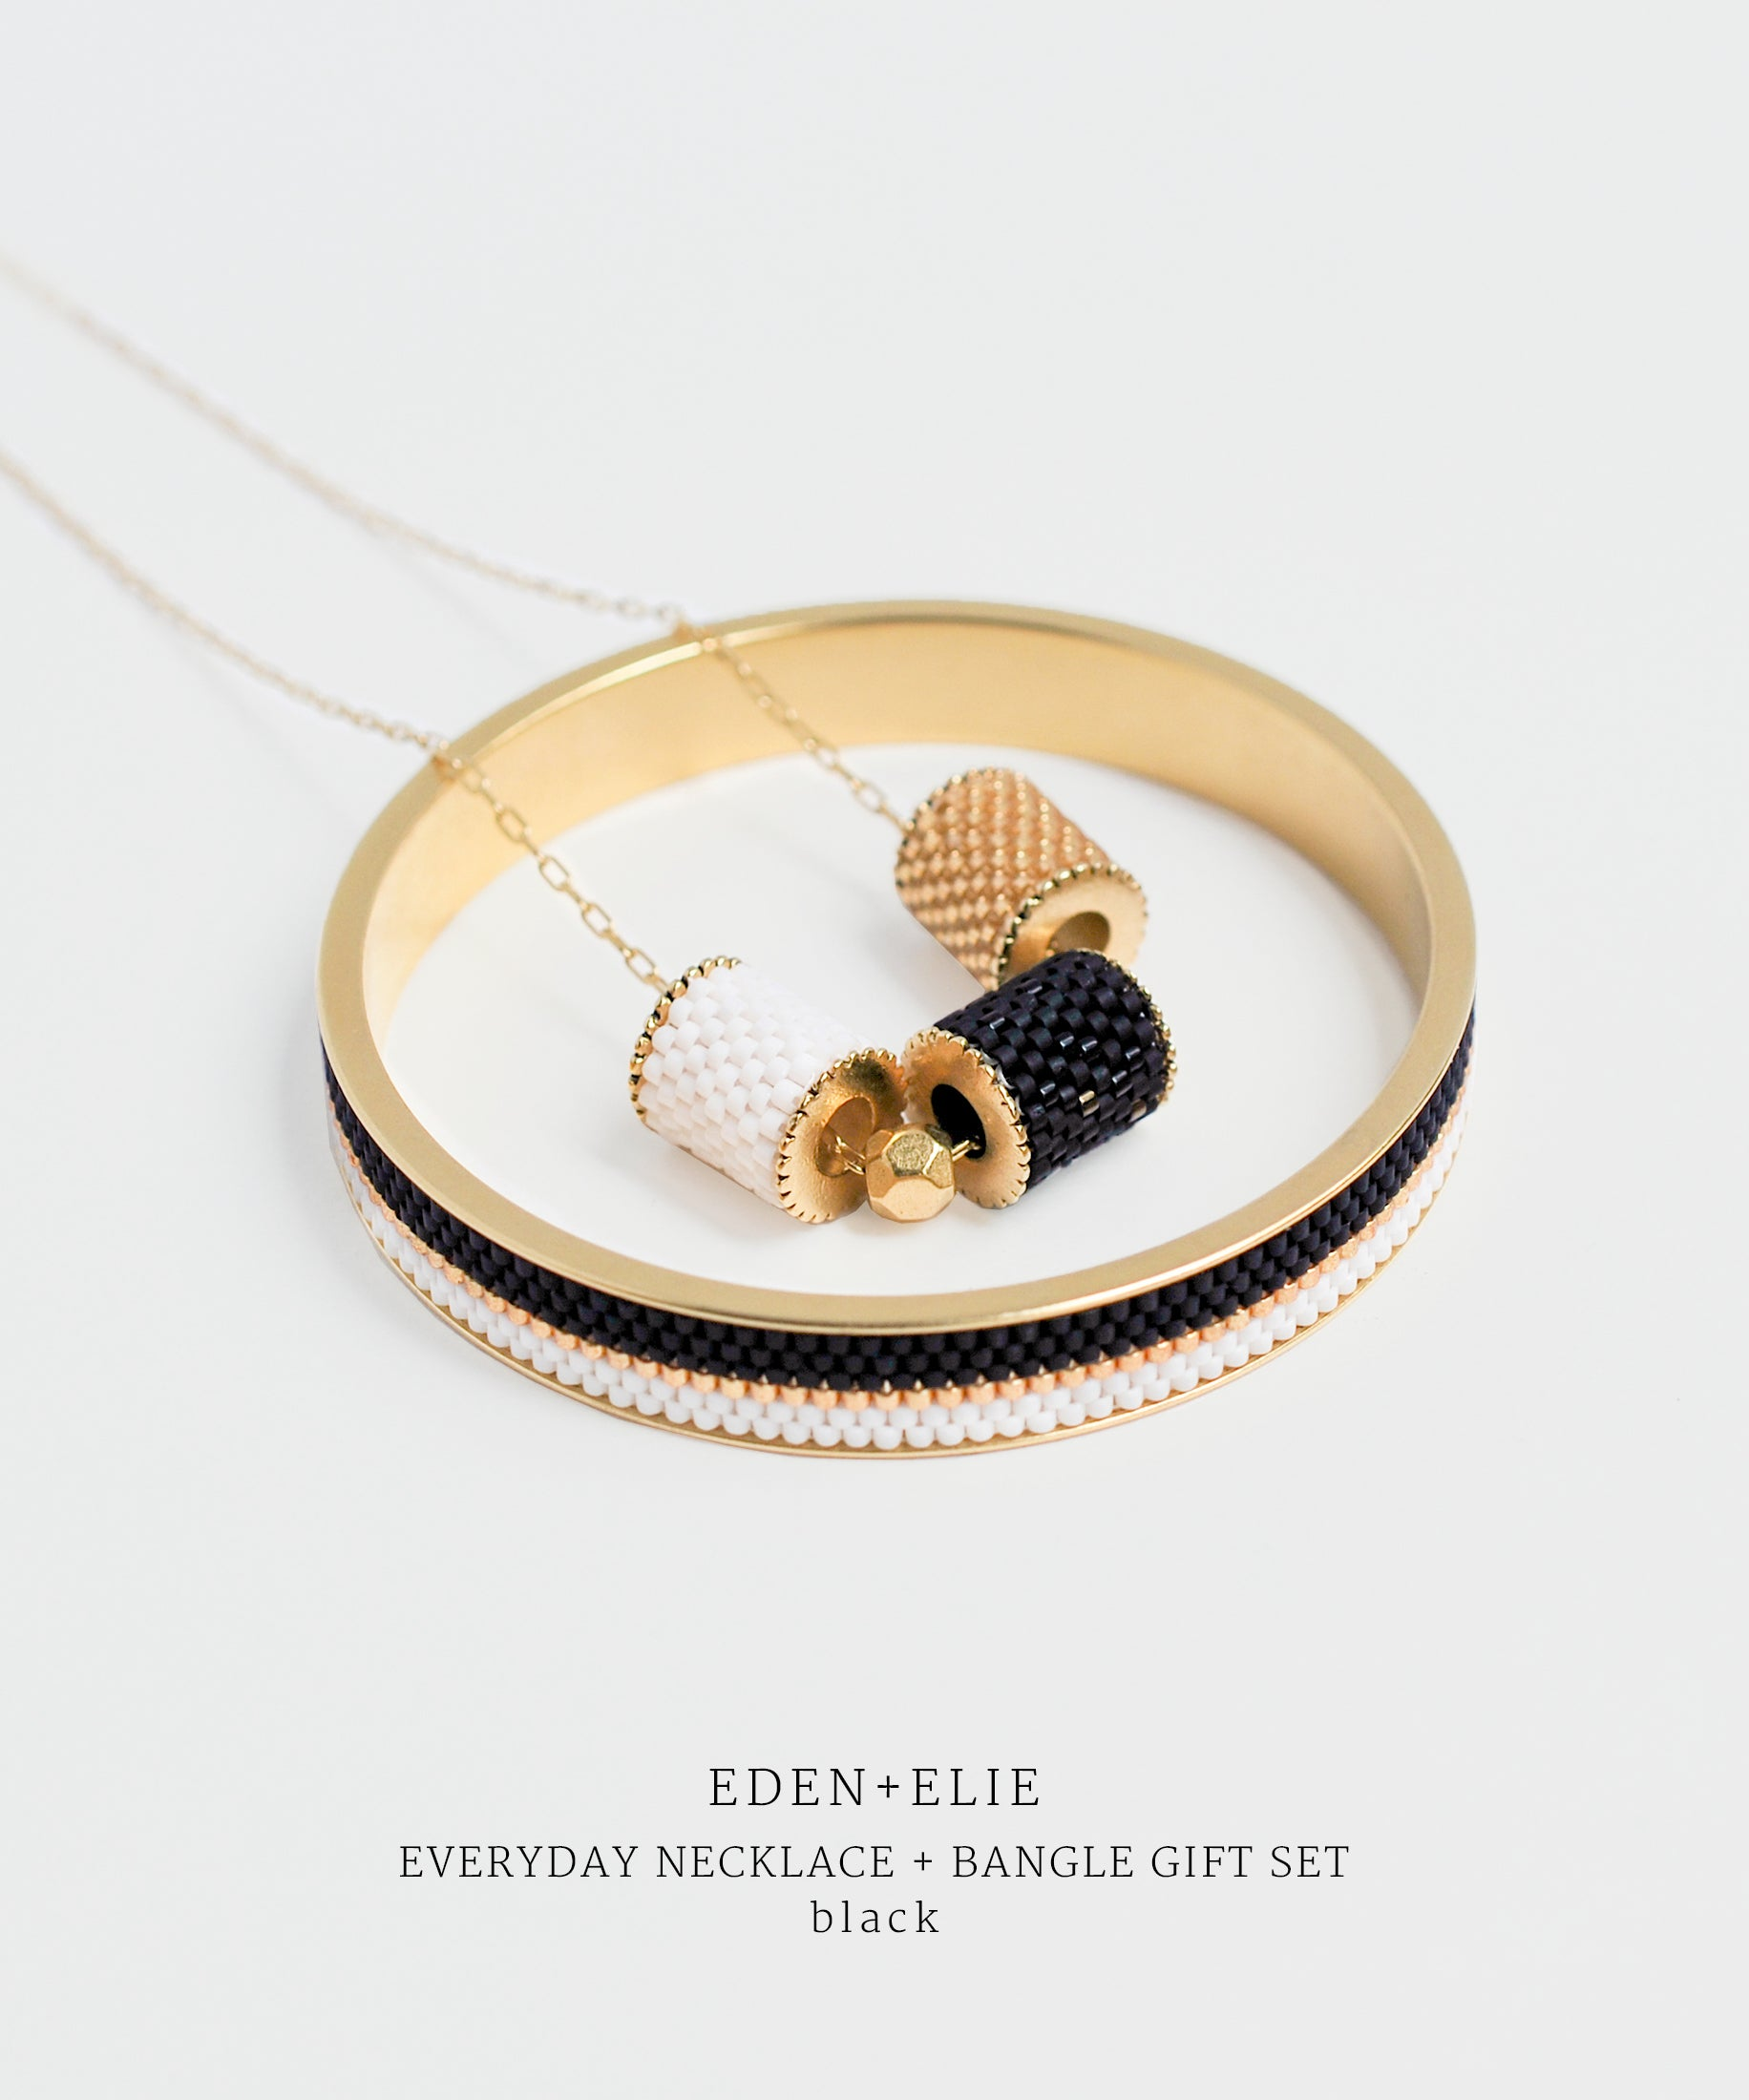 EDEN + ELIE Everyday adjustable length necklace + bangle set - basic black